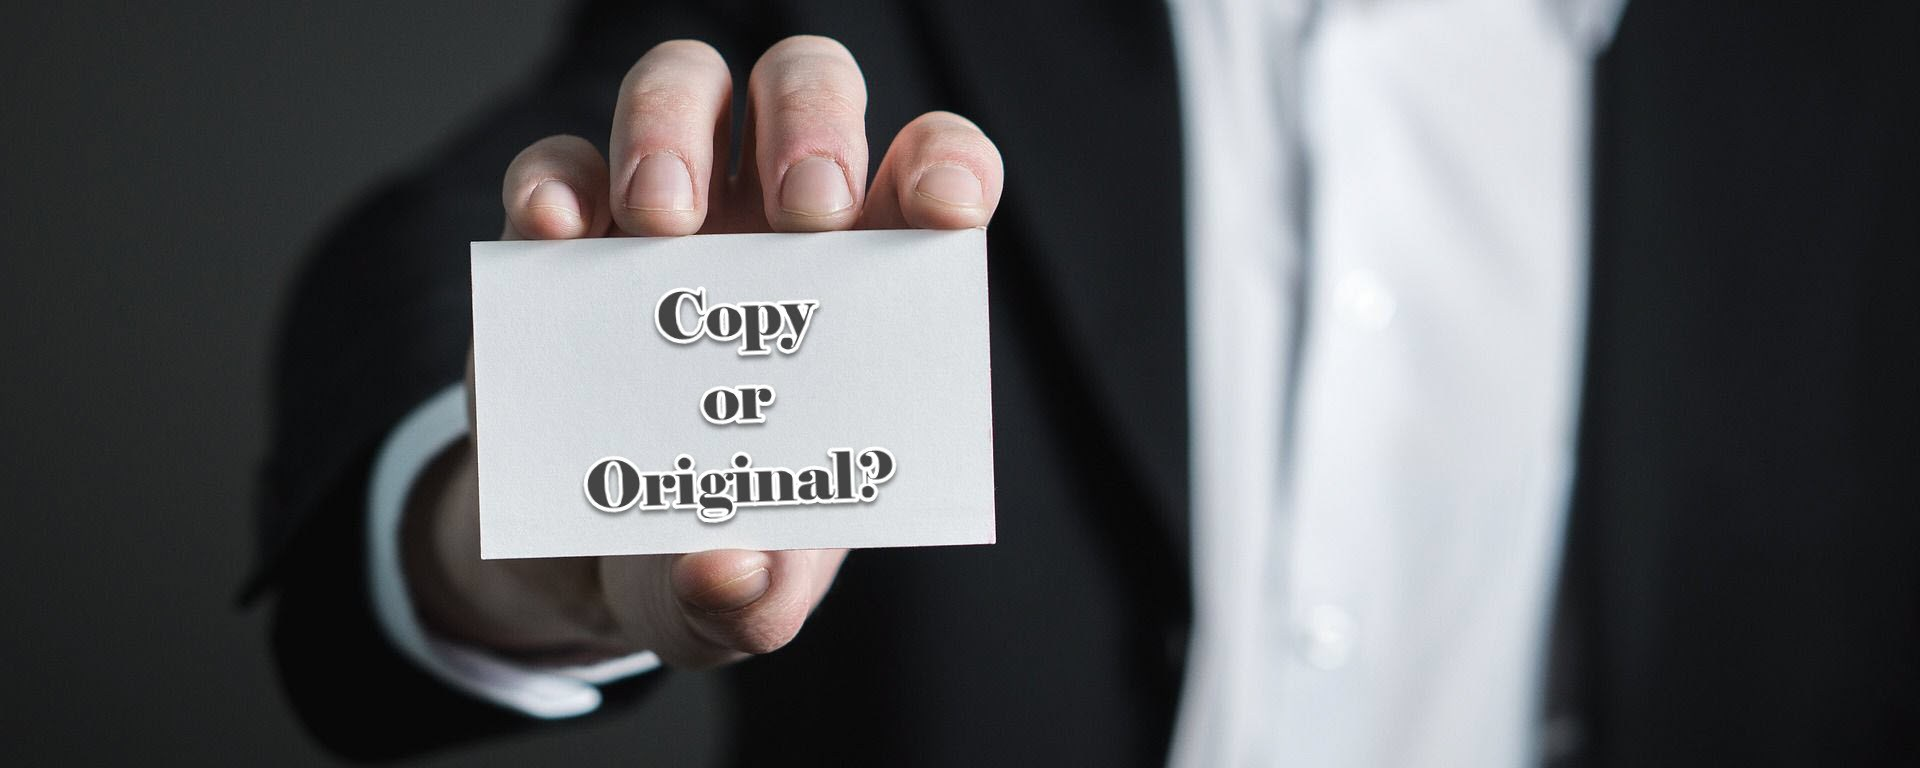 Copyright - Copy or original by TeroVasalainen CC0 Public Domain from Pixabay